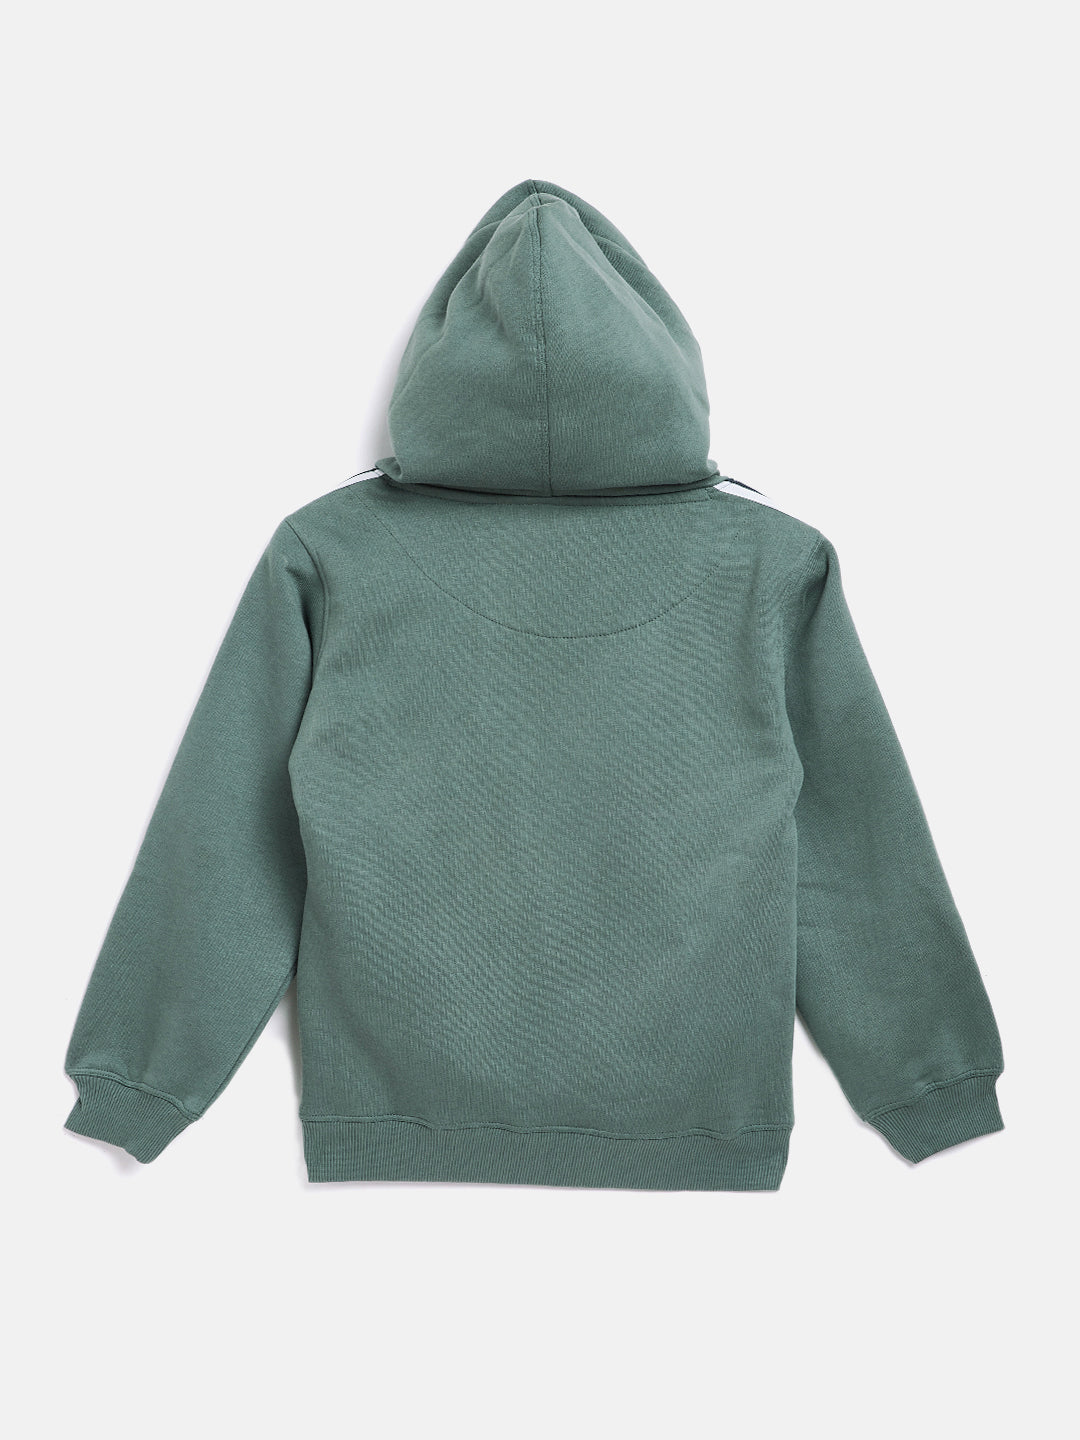 Octave Apparels Fern Hoodie for Kids